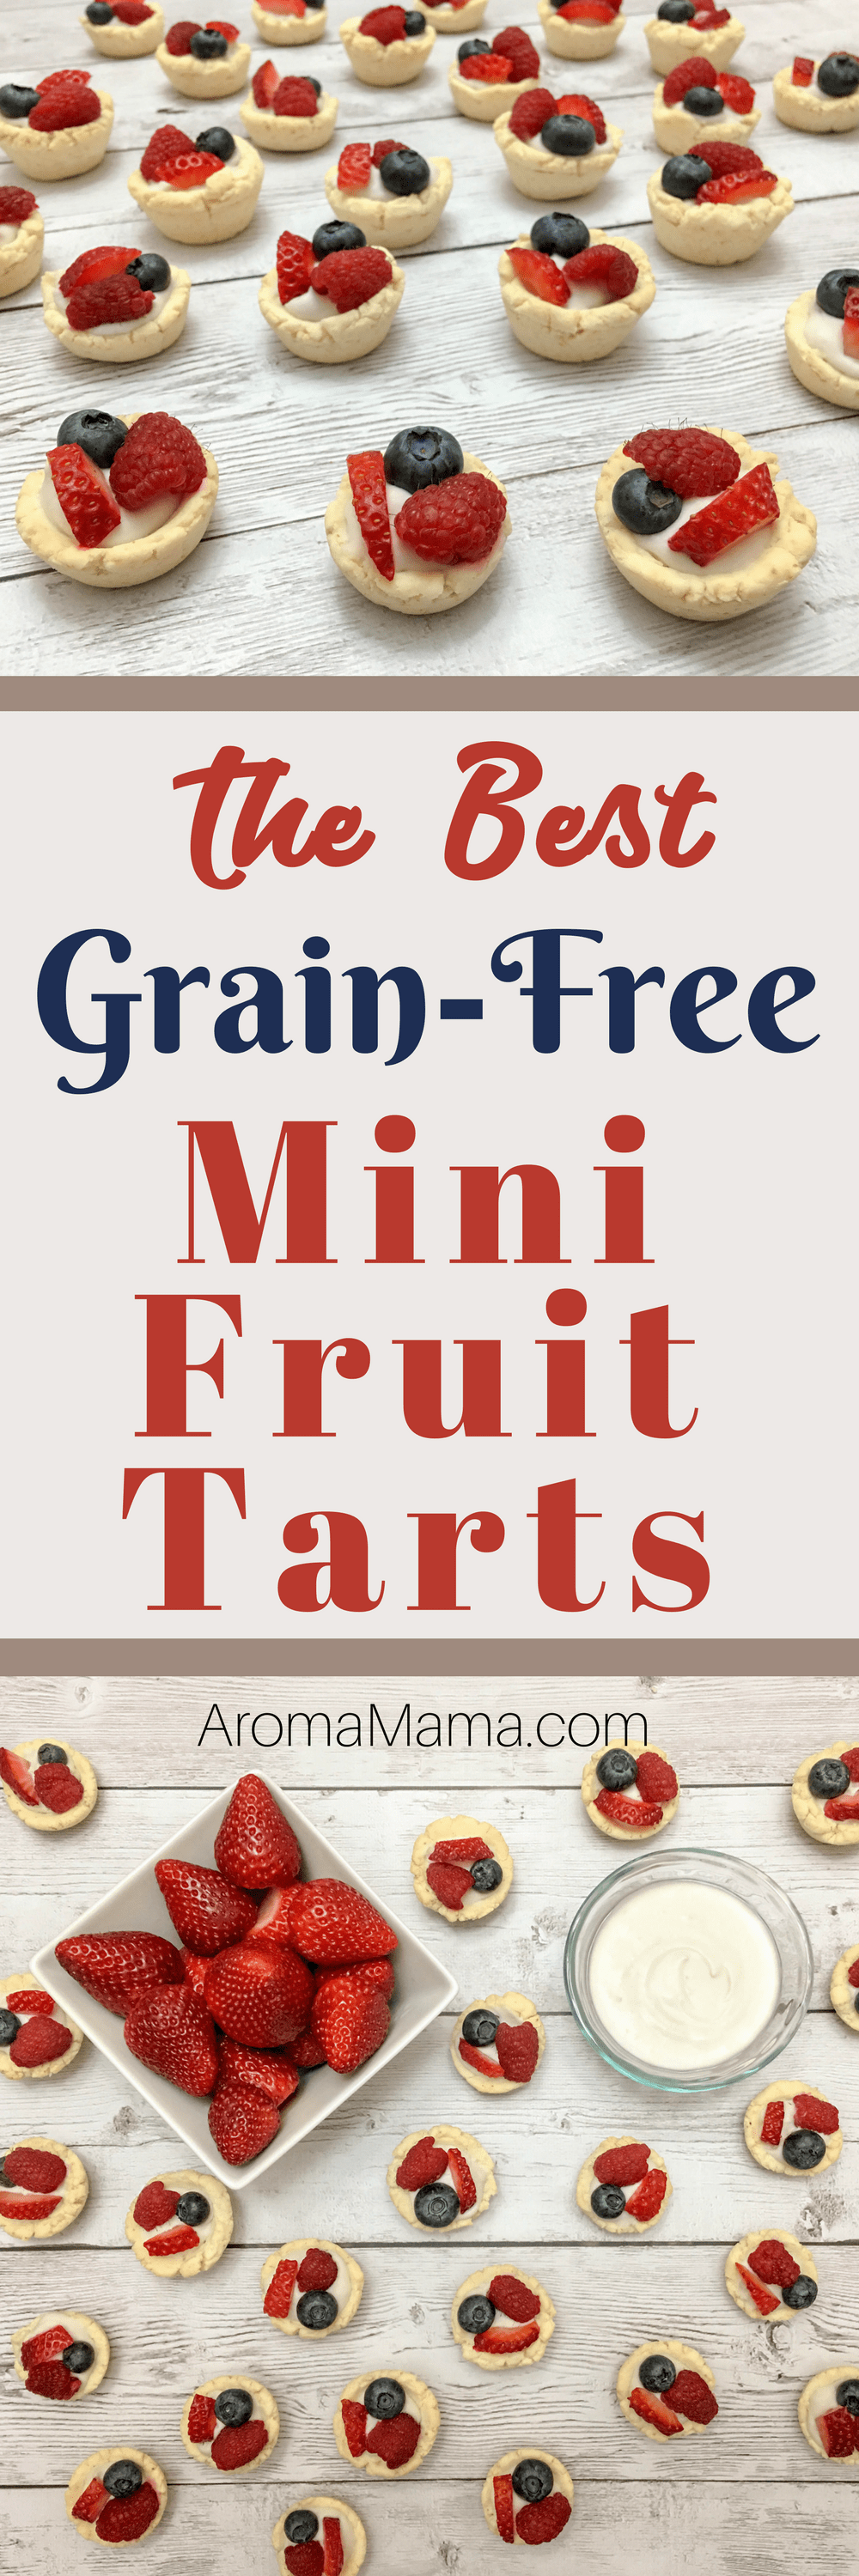 I can't wait for you to try this recipe for Grain-Free Mini Fruit Tarts! If you are on a special kind of diet, this recipe is compliant with grain-free, gluten-free, dairy-free, nut-free, egg-free, soy-free, refined sugar-free, Paleo, and the AIP diet. Wow, and it's so delicious too!